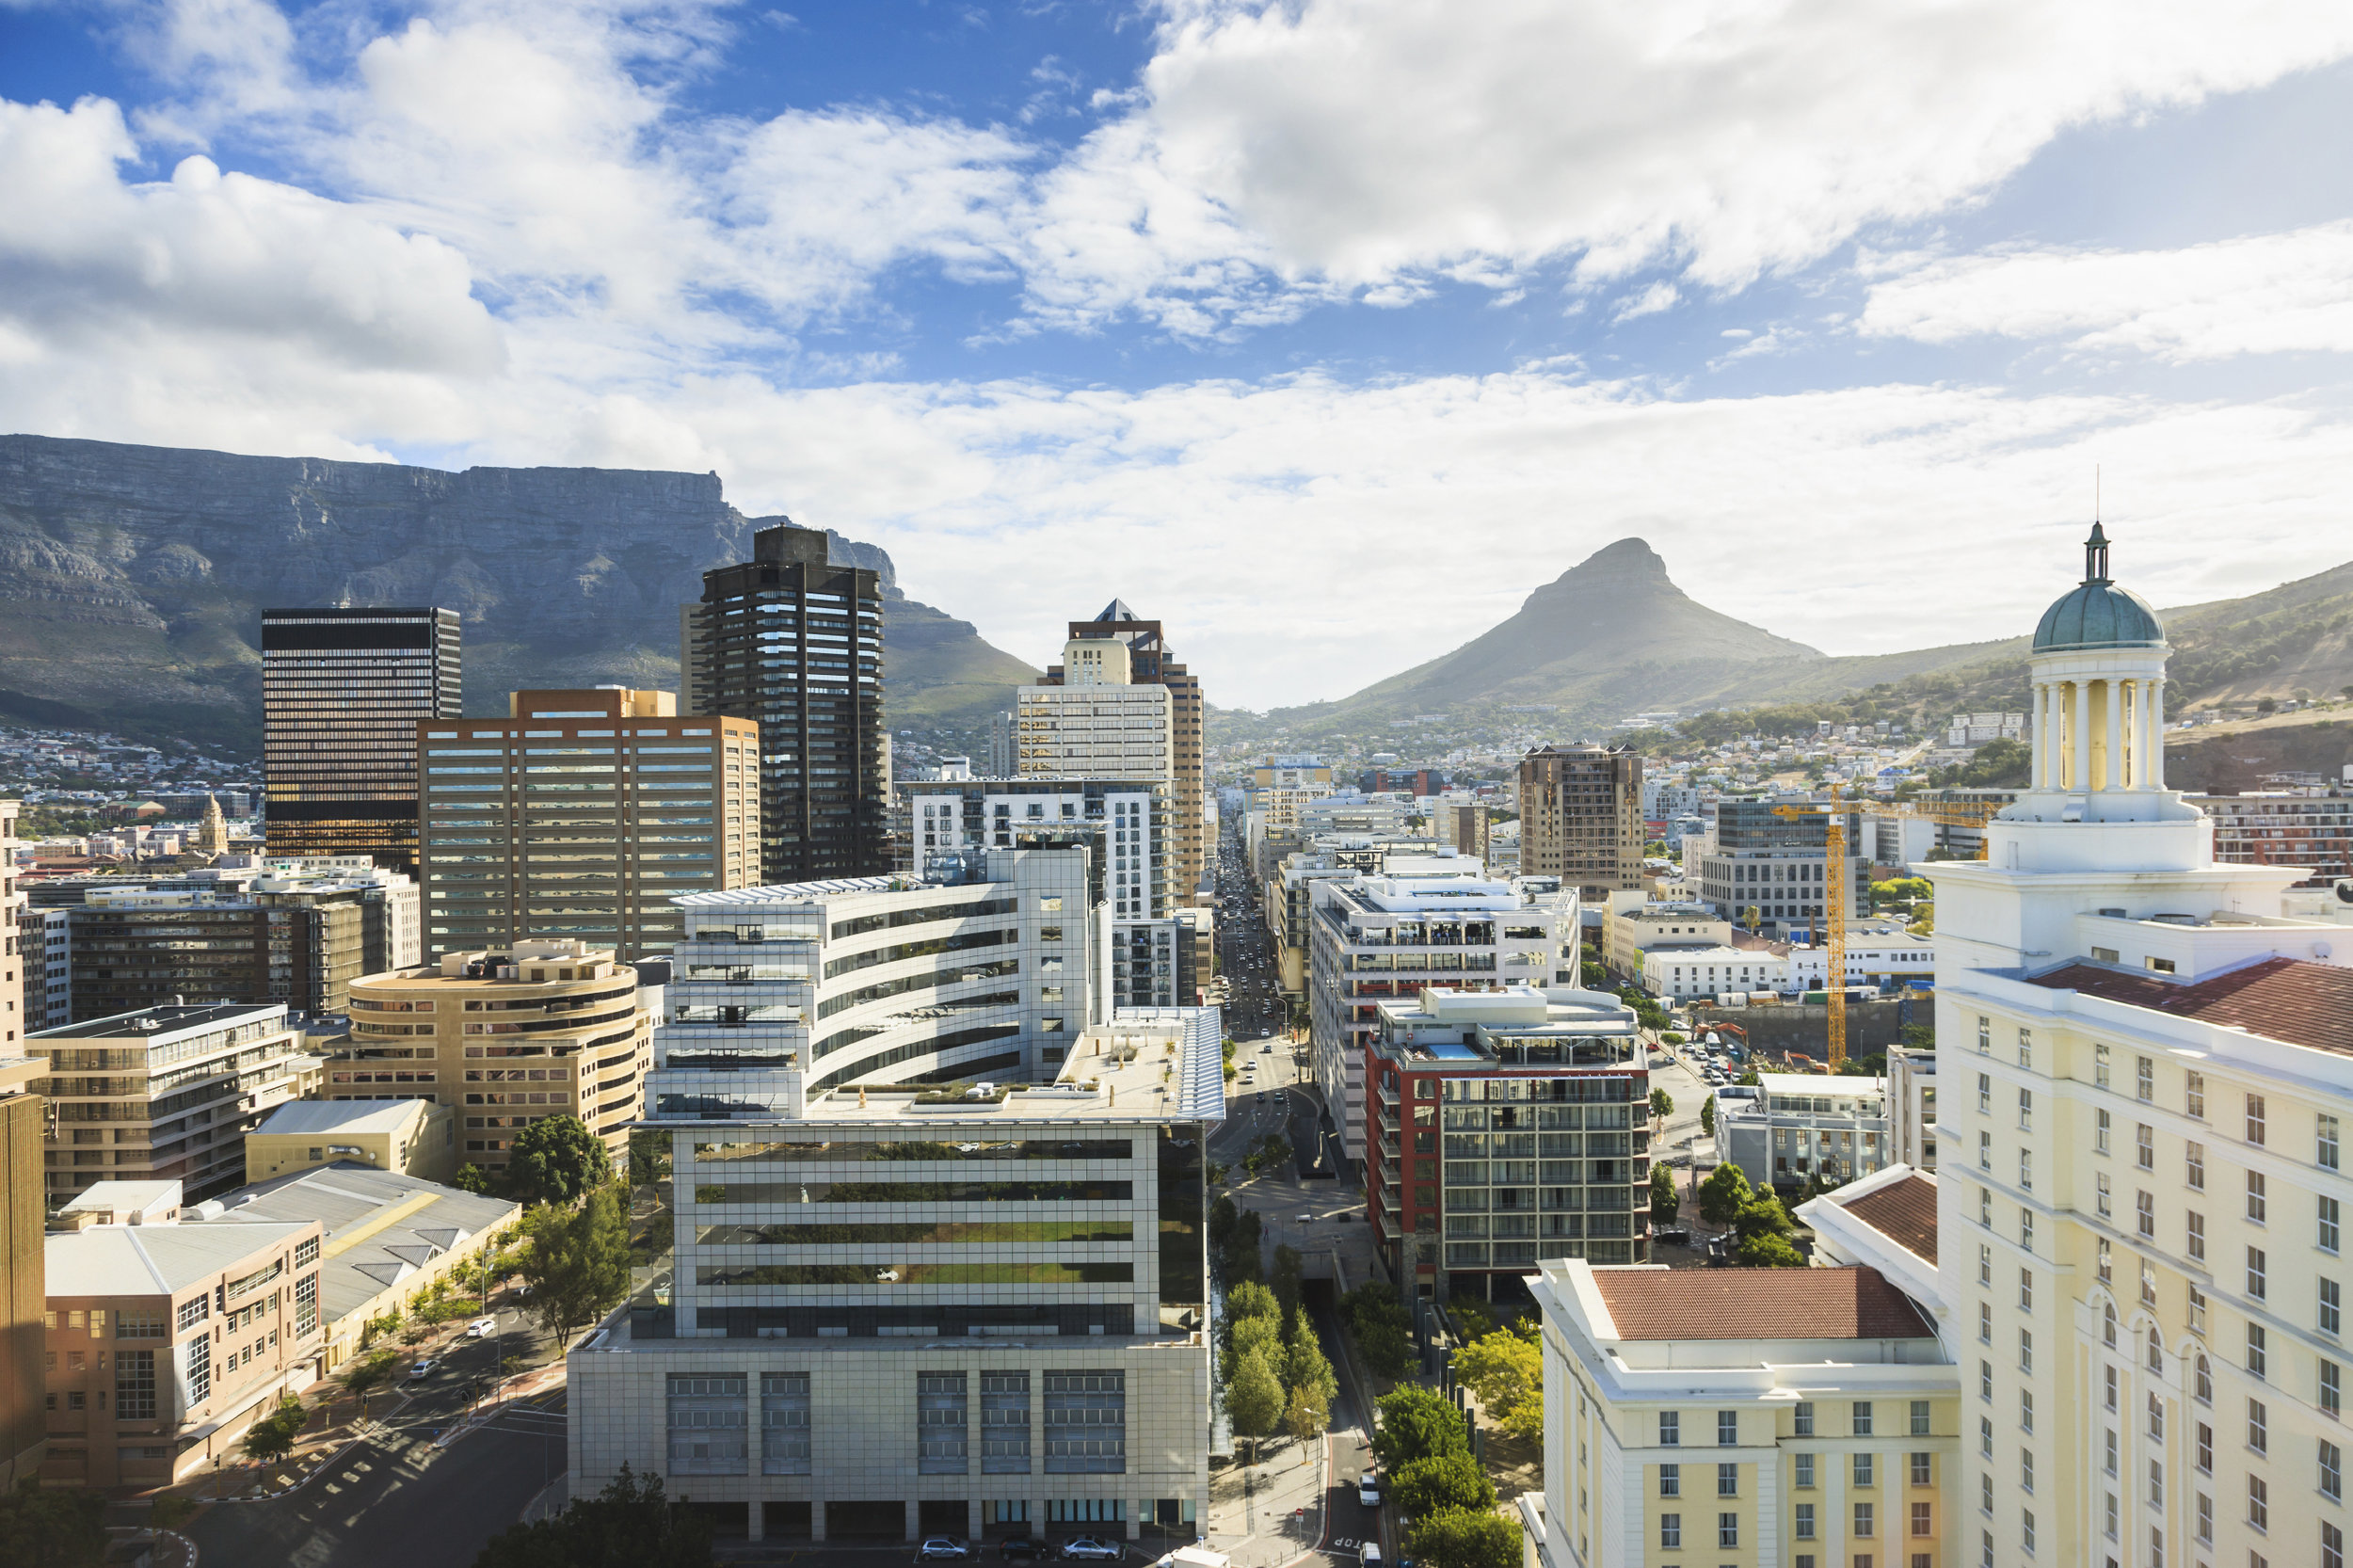 Downtown Cape Town, South Africa business district. © Mlenny Photography